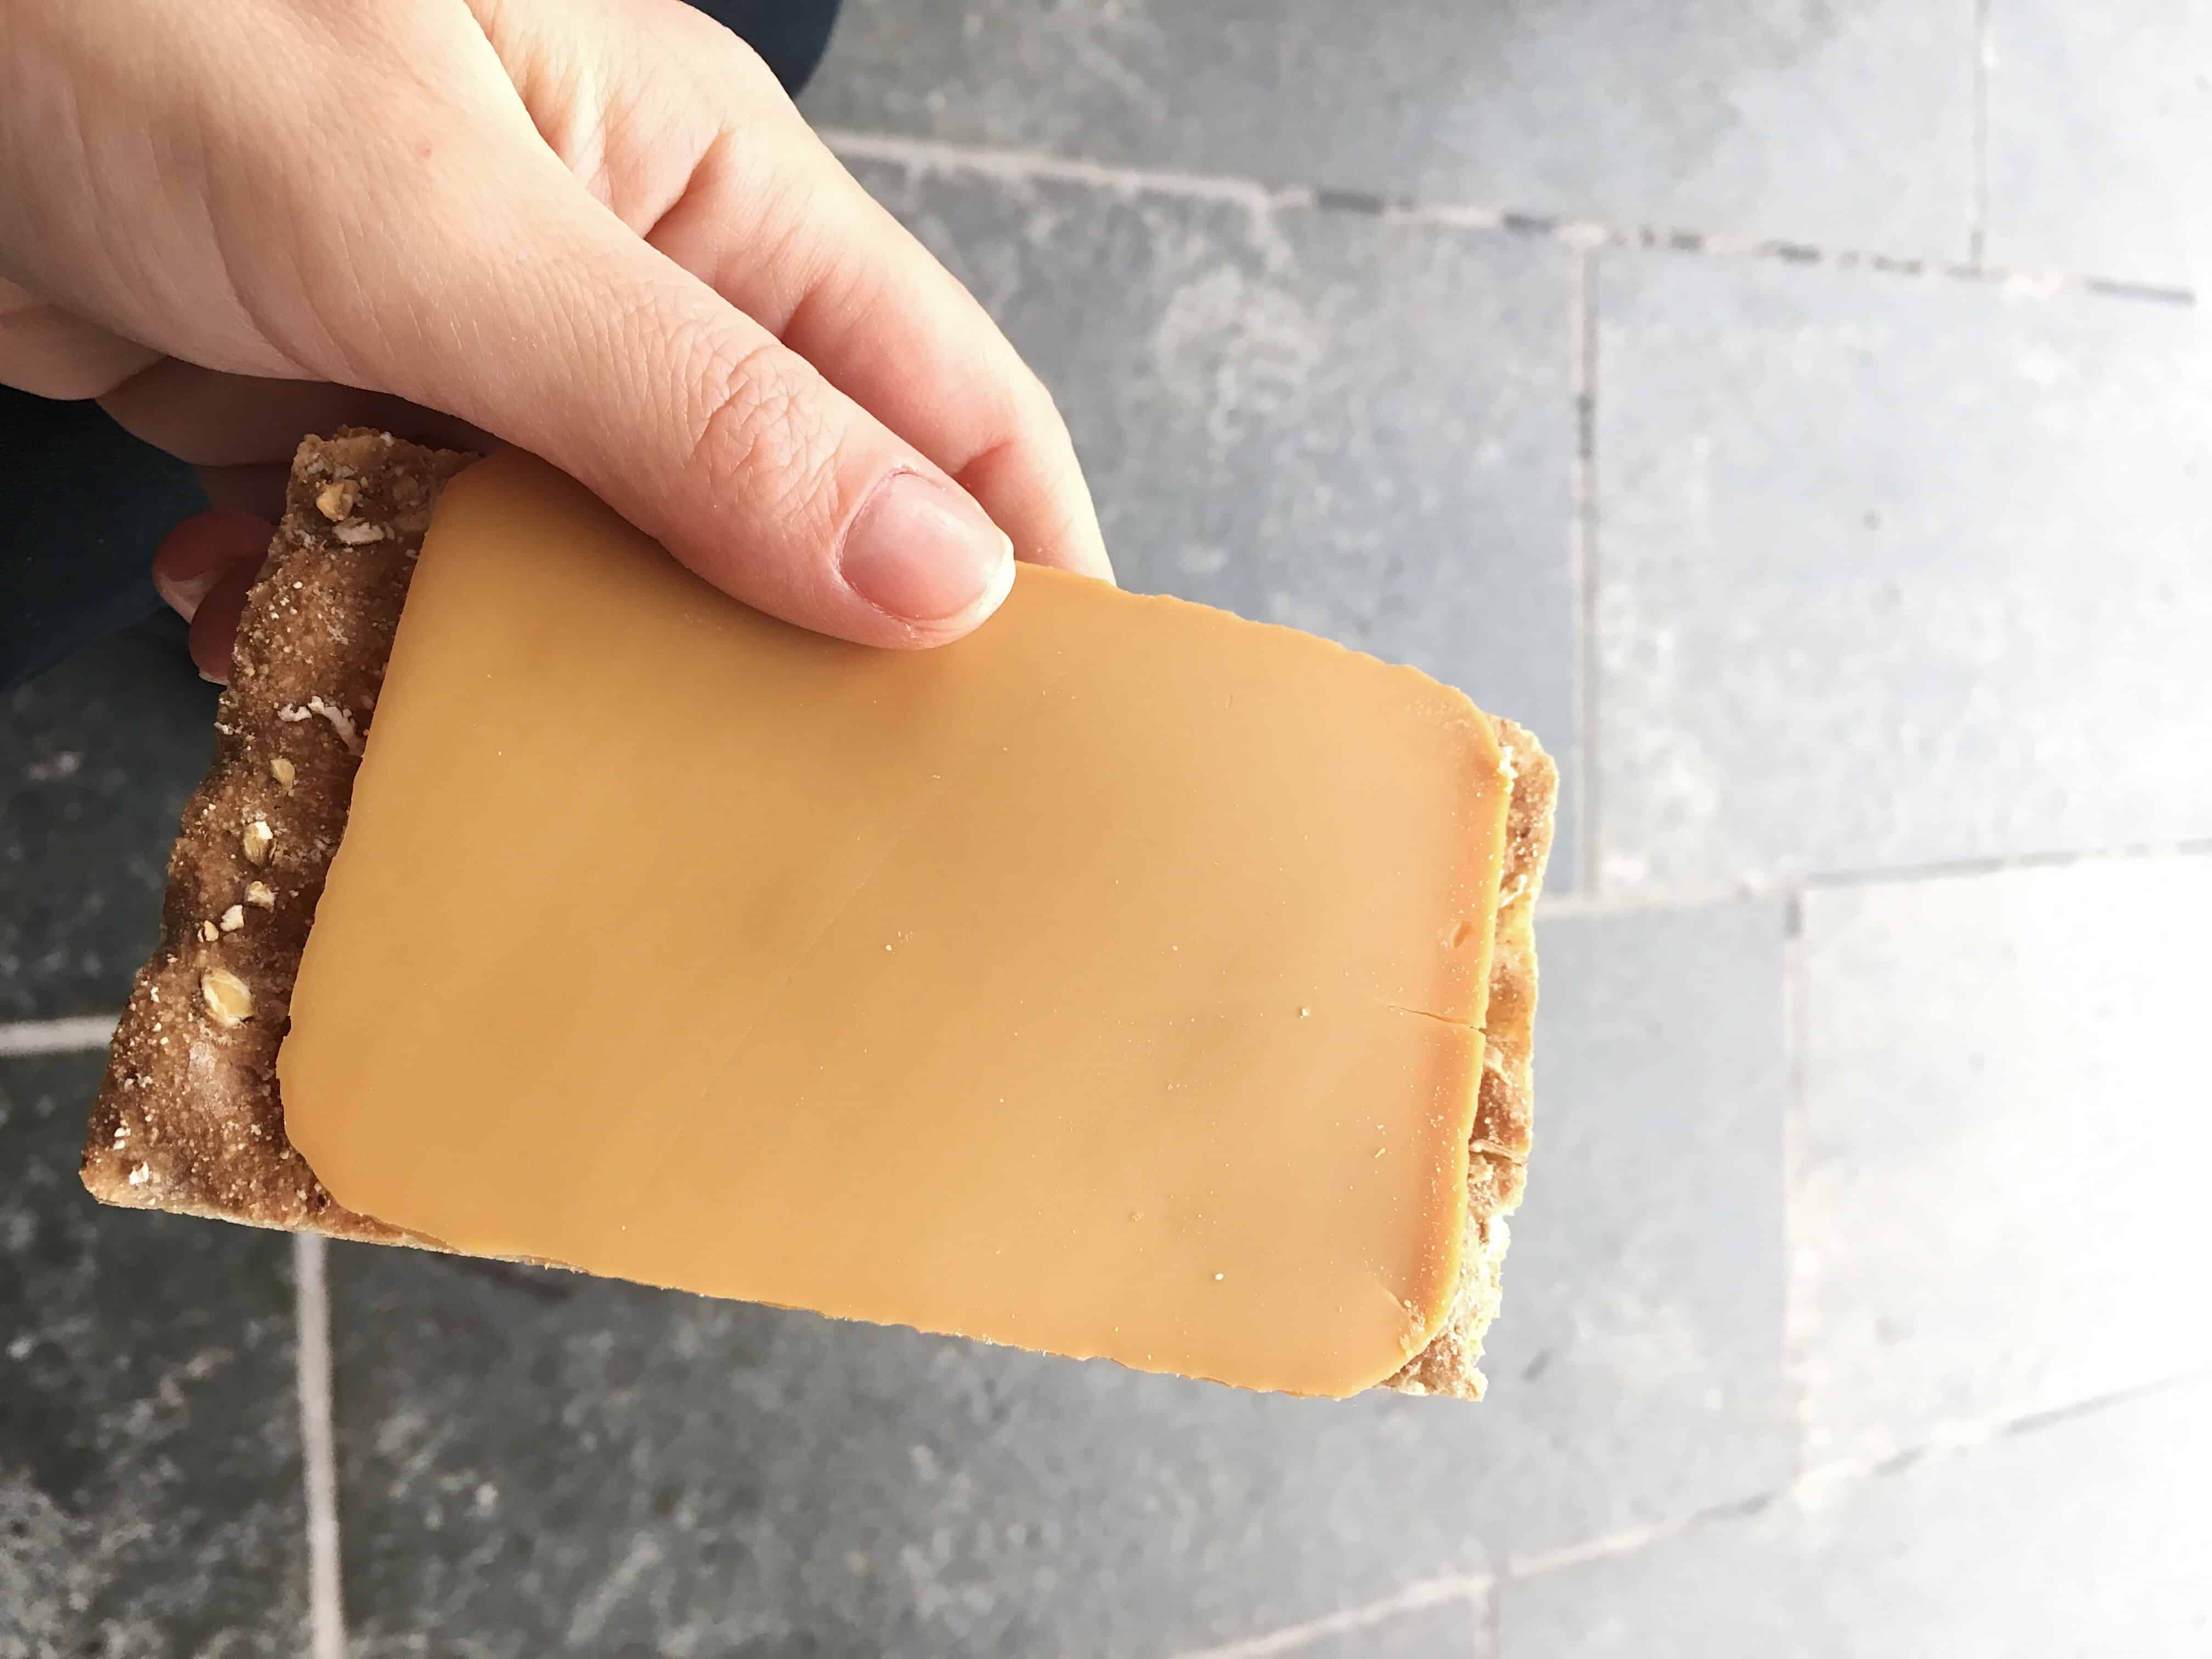 Brown Cheese is a unique and popular food in Norway